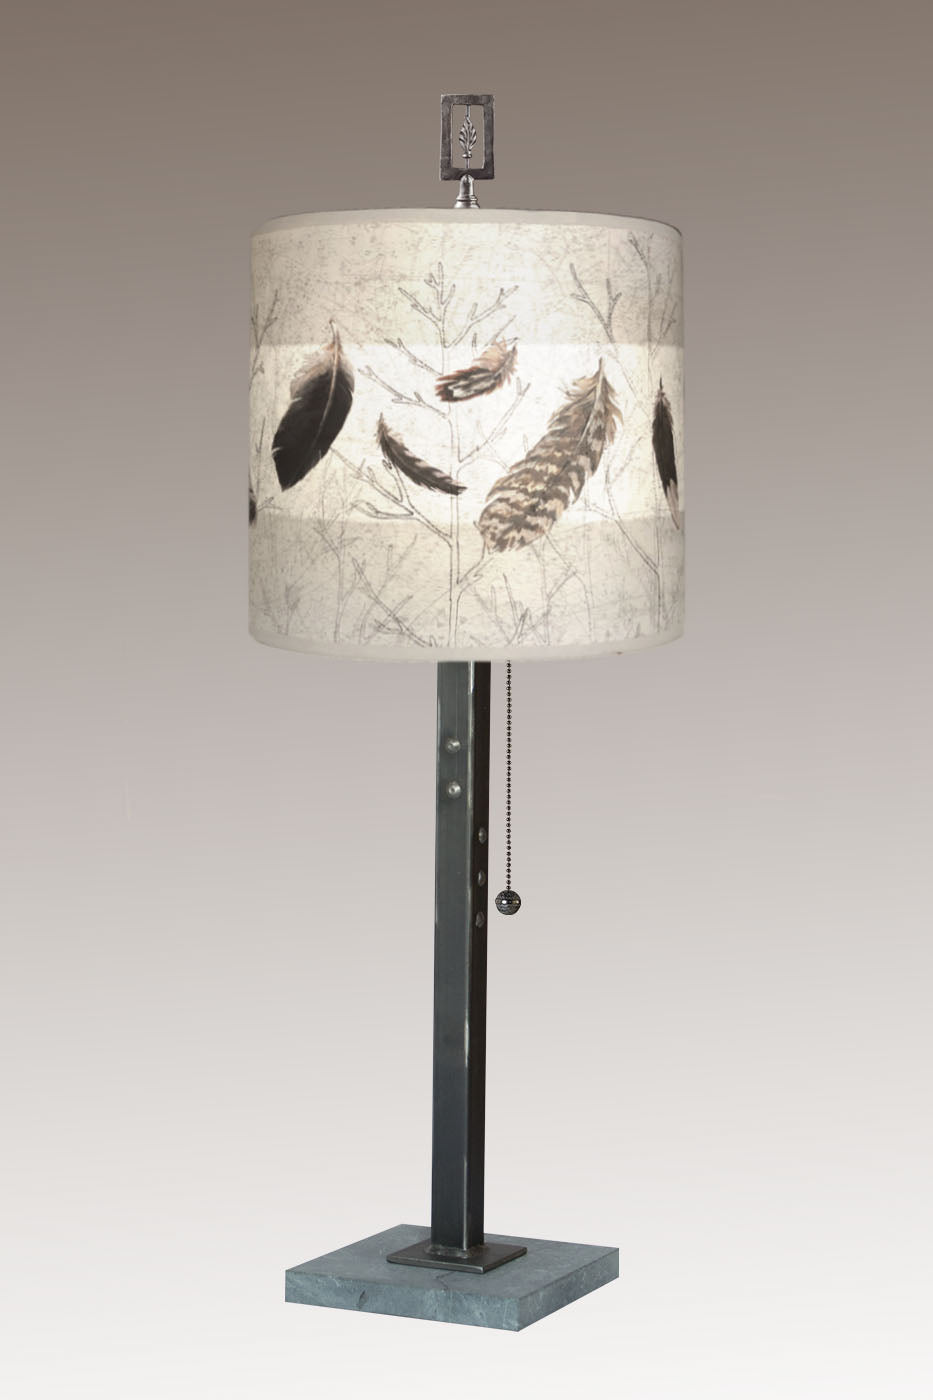 Steel Table Lamp on Marble with Medium Drum Shade in Feathers in Pebble